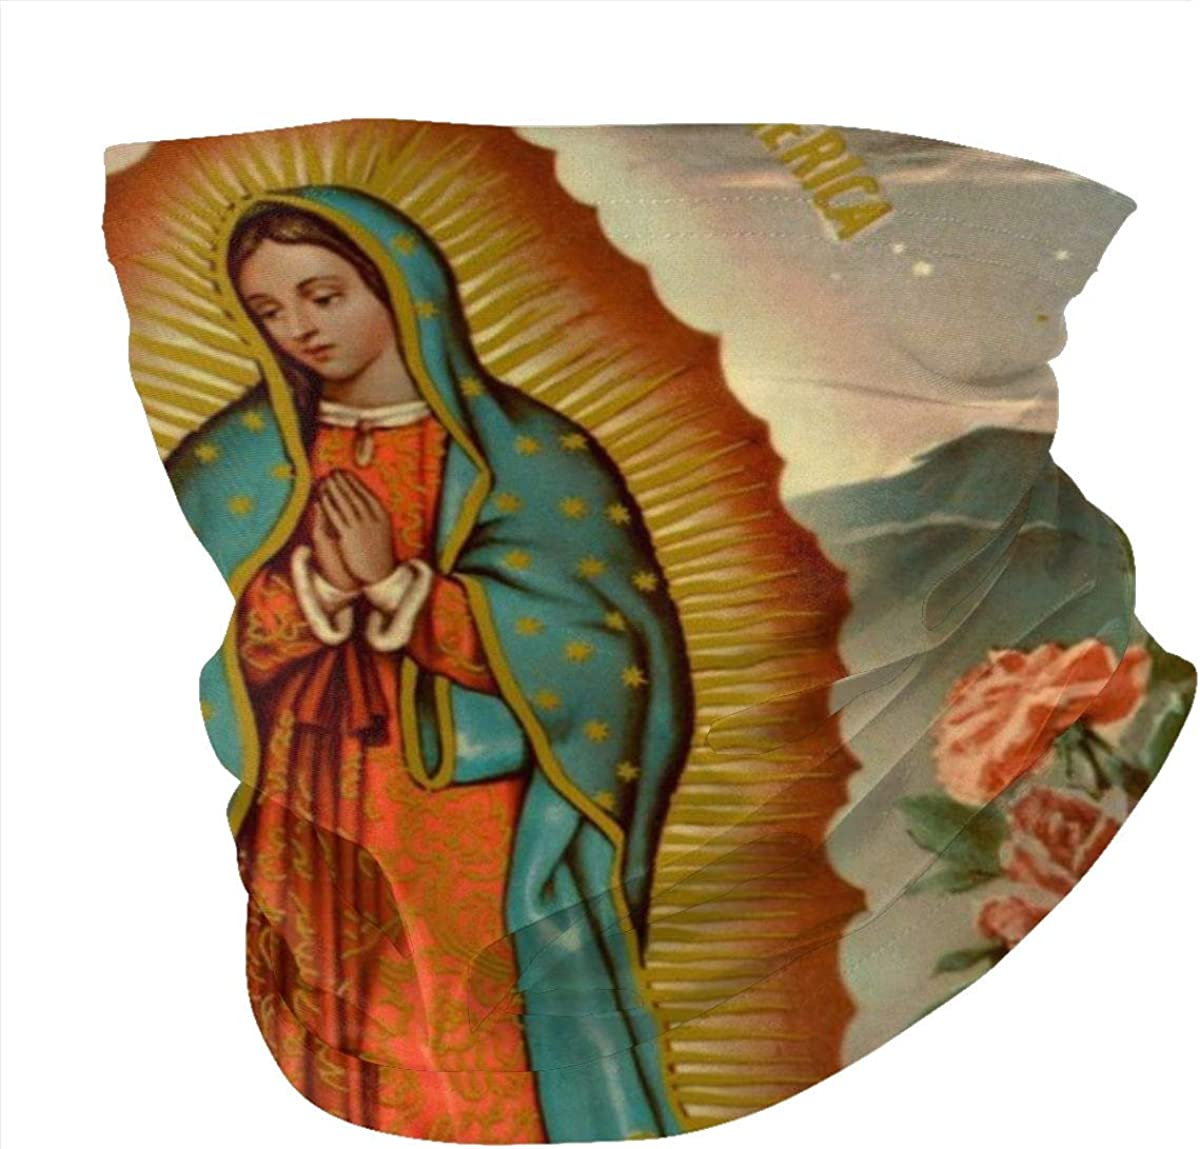 Seamless Quick Dry Breathable Outdoor UV Protection Our Lady of Guadalupe Virgin Mary Head Wrap Face Scarf Neck Gaiter Bandana Balaclava Black